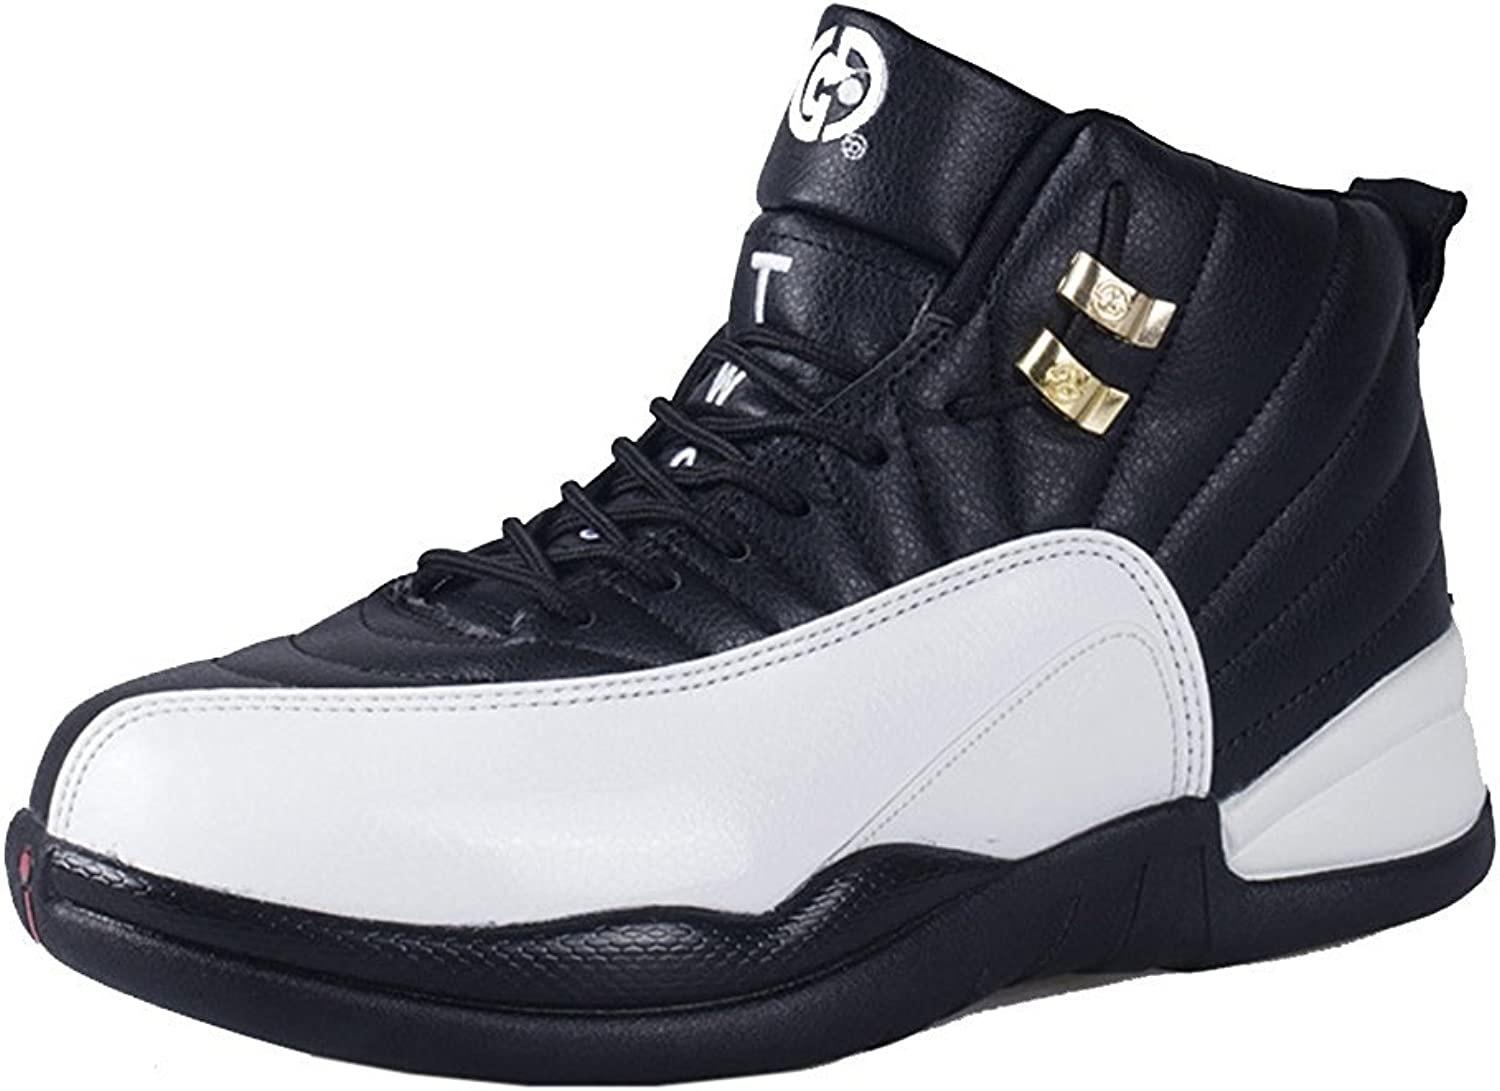 BININBOX Unisex Adult Sneaker High Top Sports shoes Basketball shoes